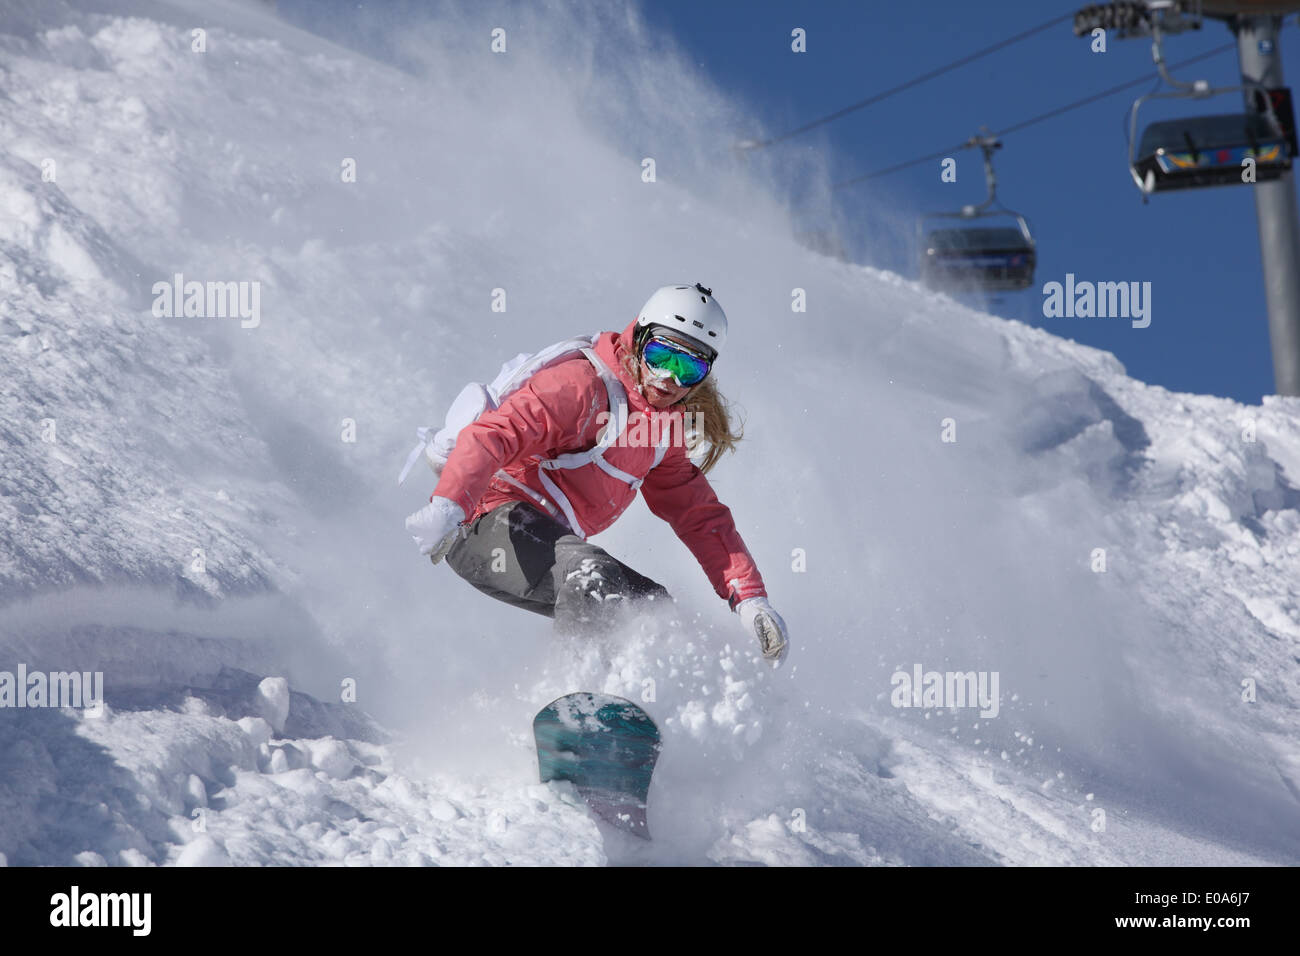 Young woman snowboarding on steep mountain, Hintertux, Tyrol, Austria - Stock Image